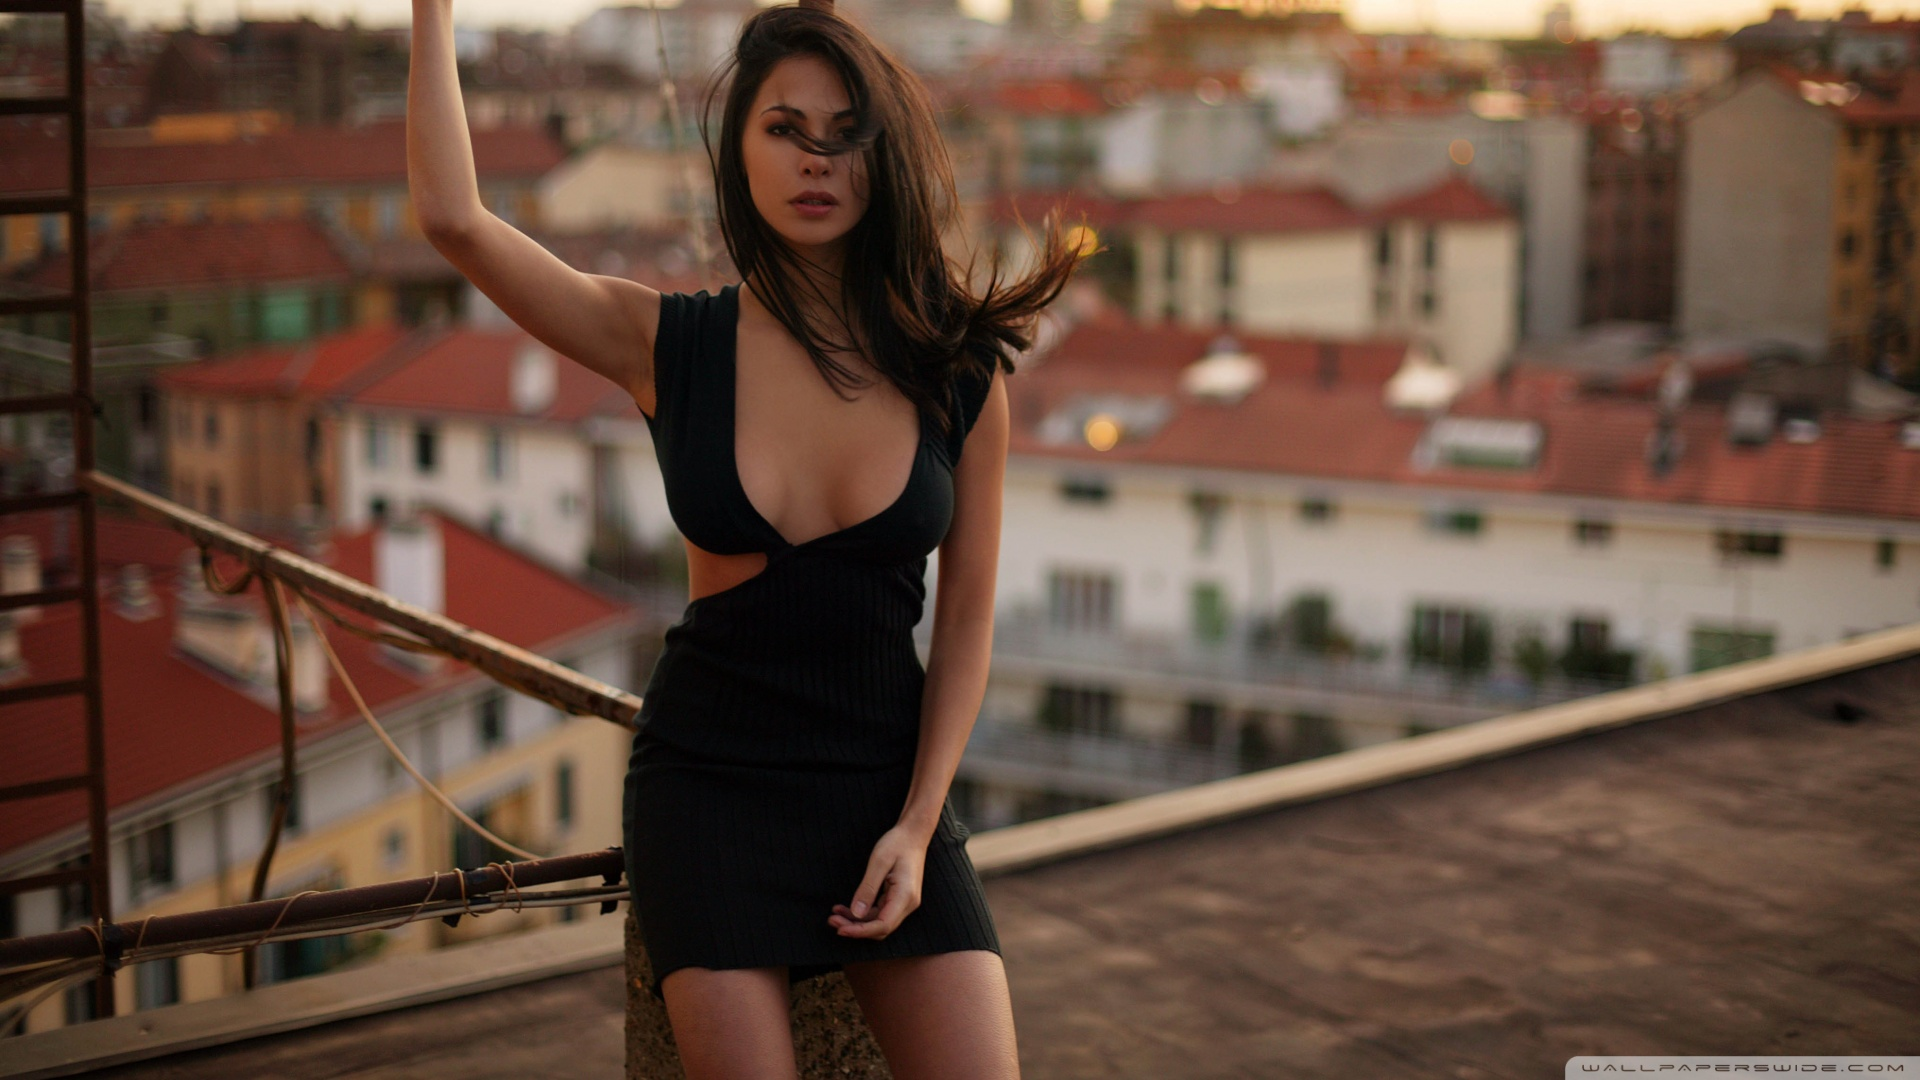 girl_in_a_sexy_dress-wallpaper-1920x1080